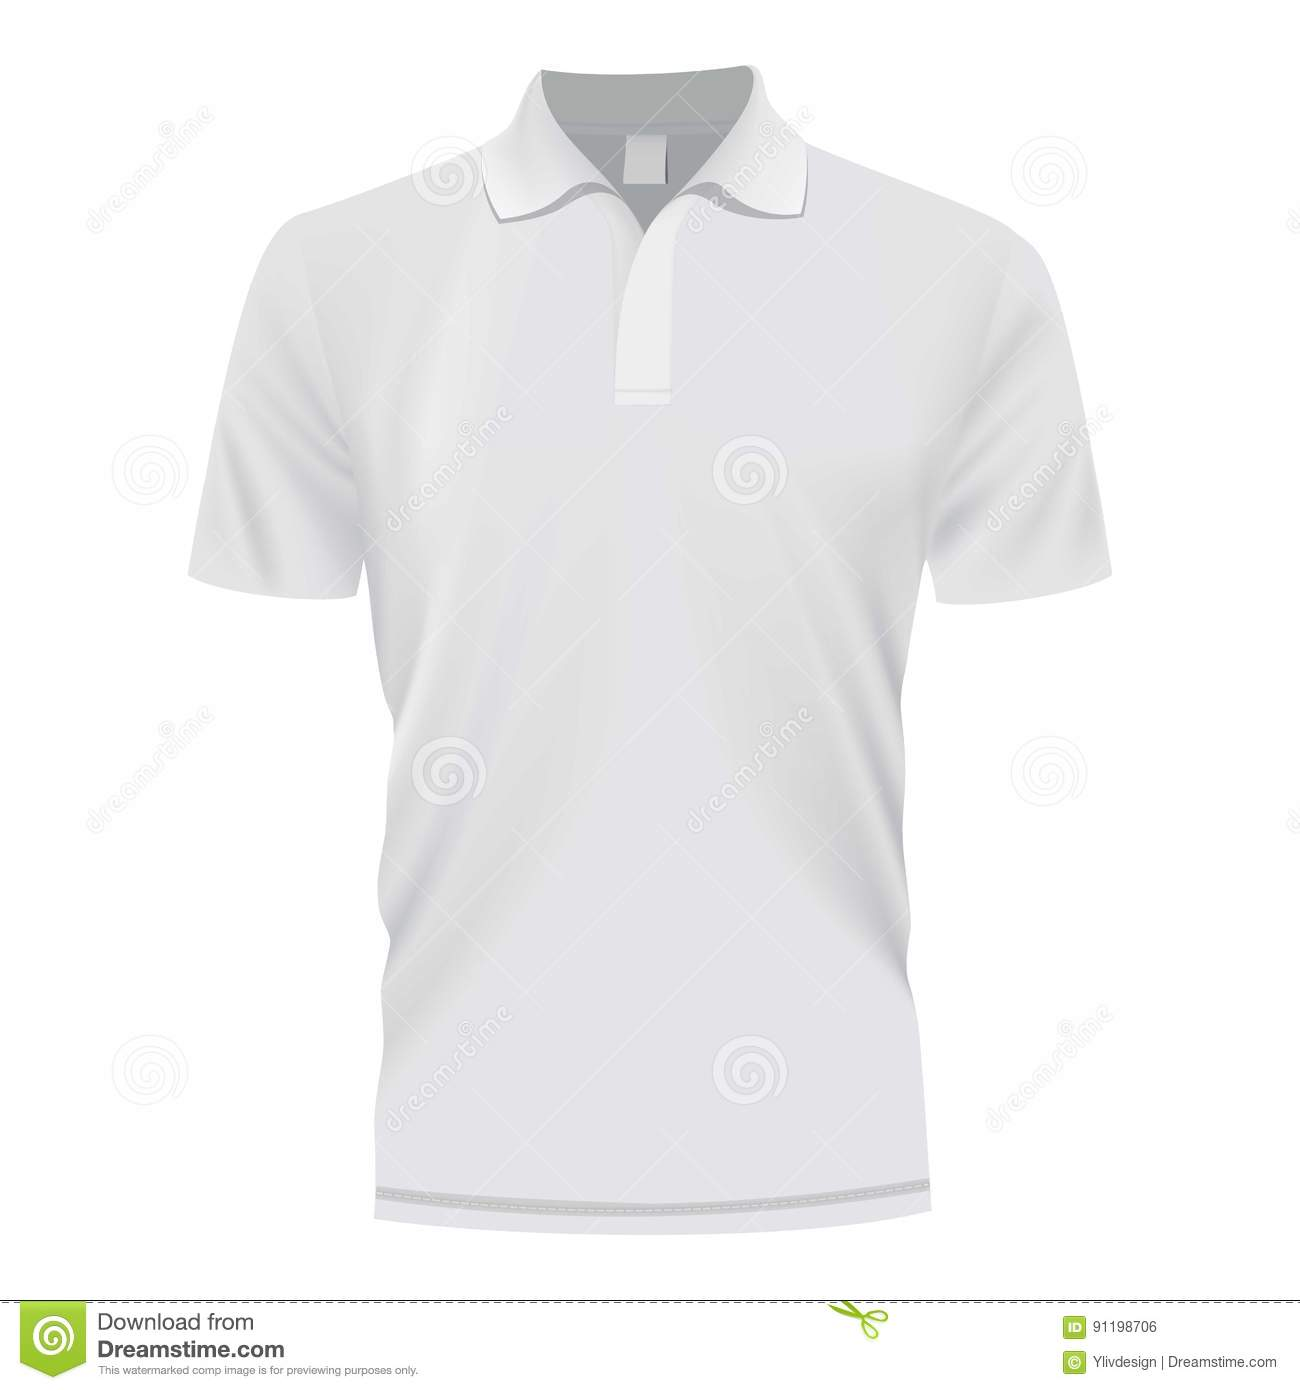 7070cf5c White polo shirt mockup. Realistic illustration of white polo shirt vector  mockup for web